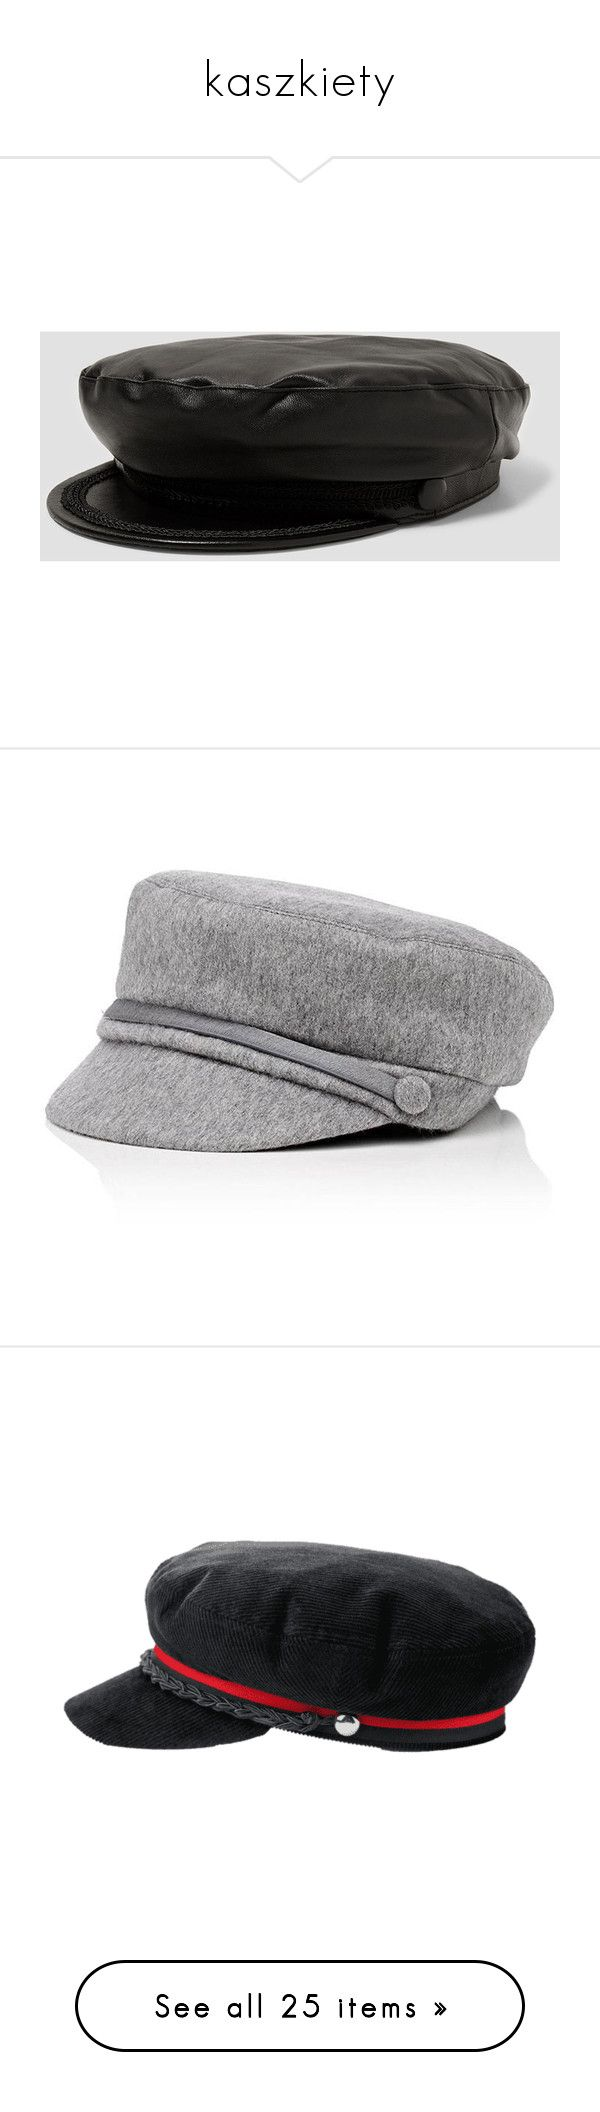 """""""kaszkiety"""" by margo47 ❤ liked on Polyvore featuring accessories, hats, beanie cap hat, leather beanie hat, cap hats, leather cap, leather hat, light grey, gatsby cap and newsboy caps"""